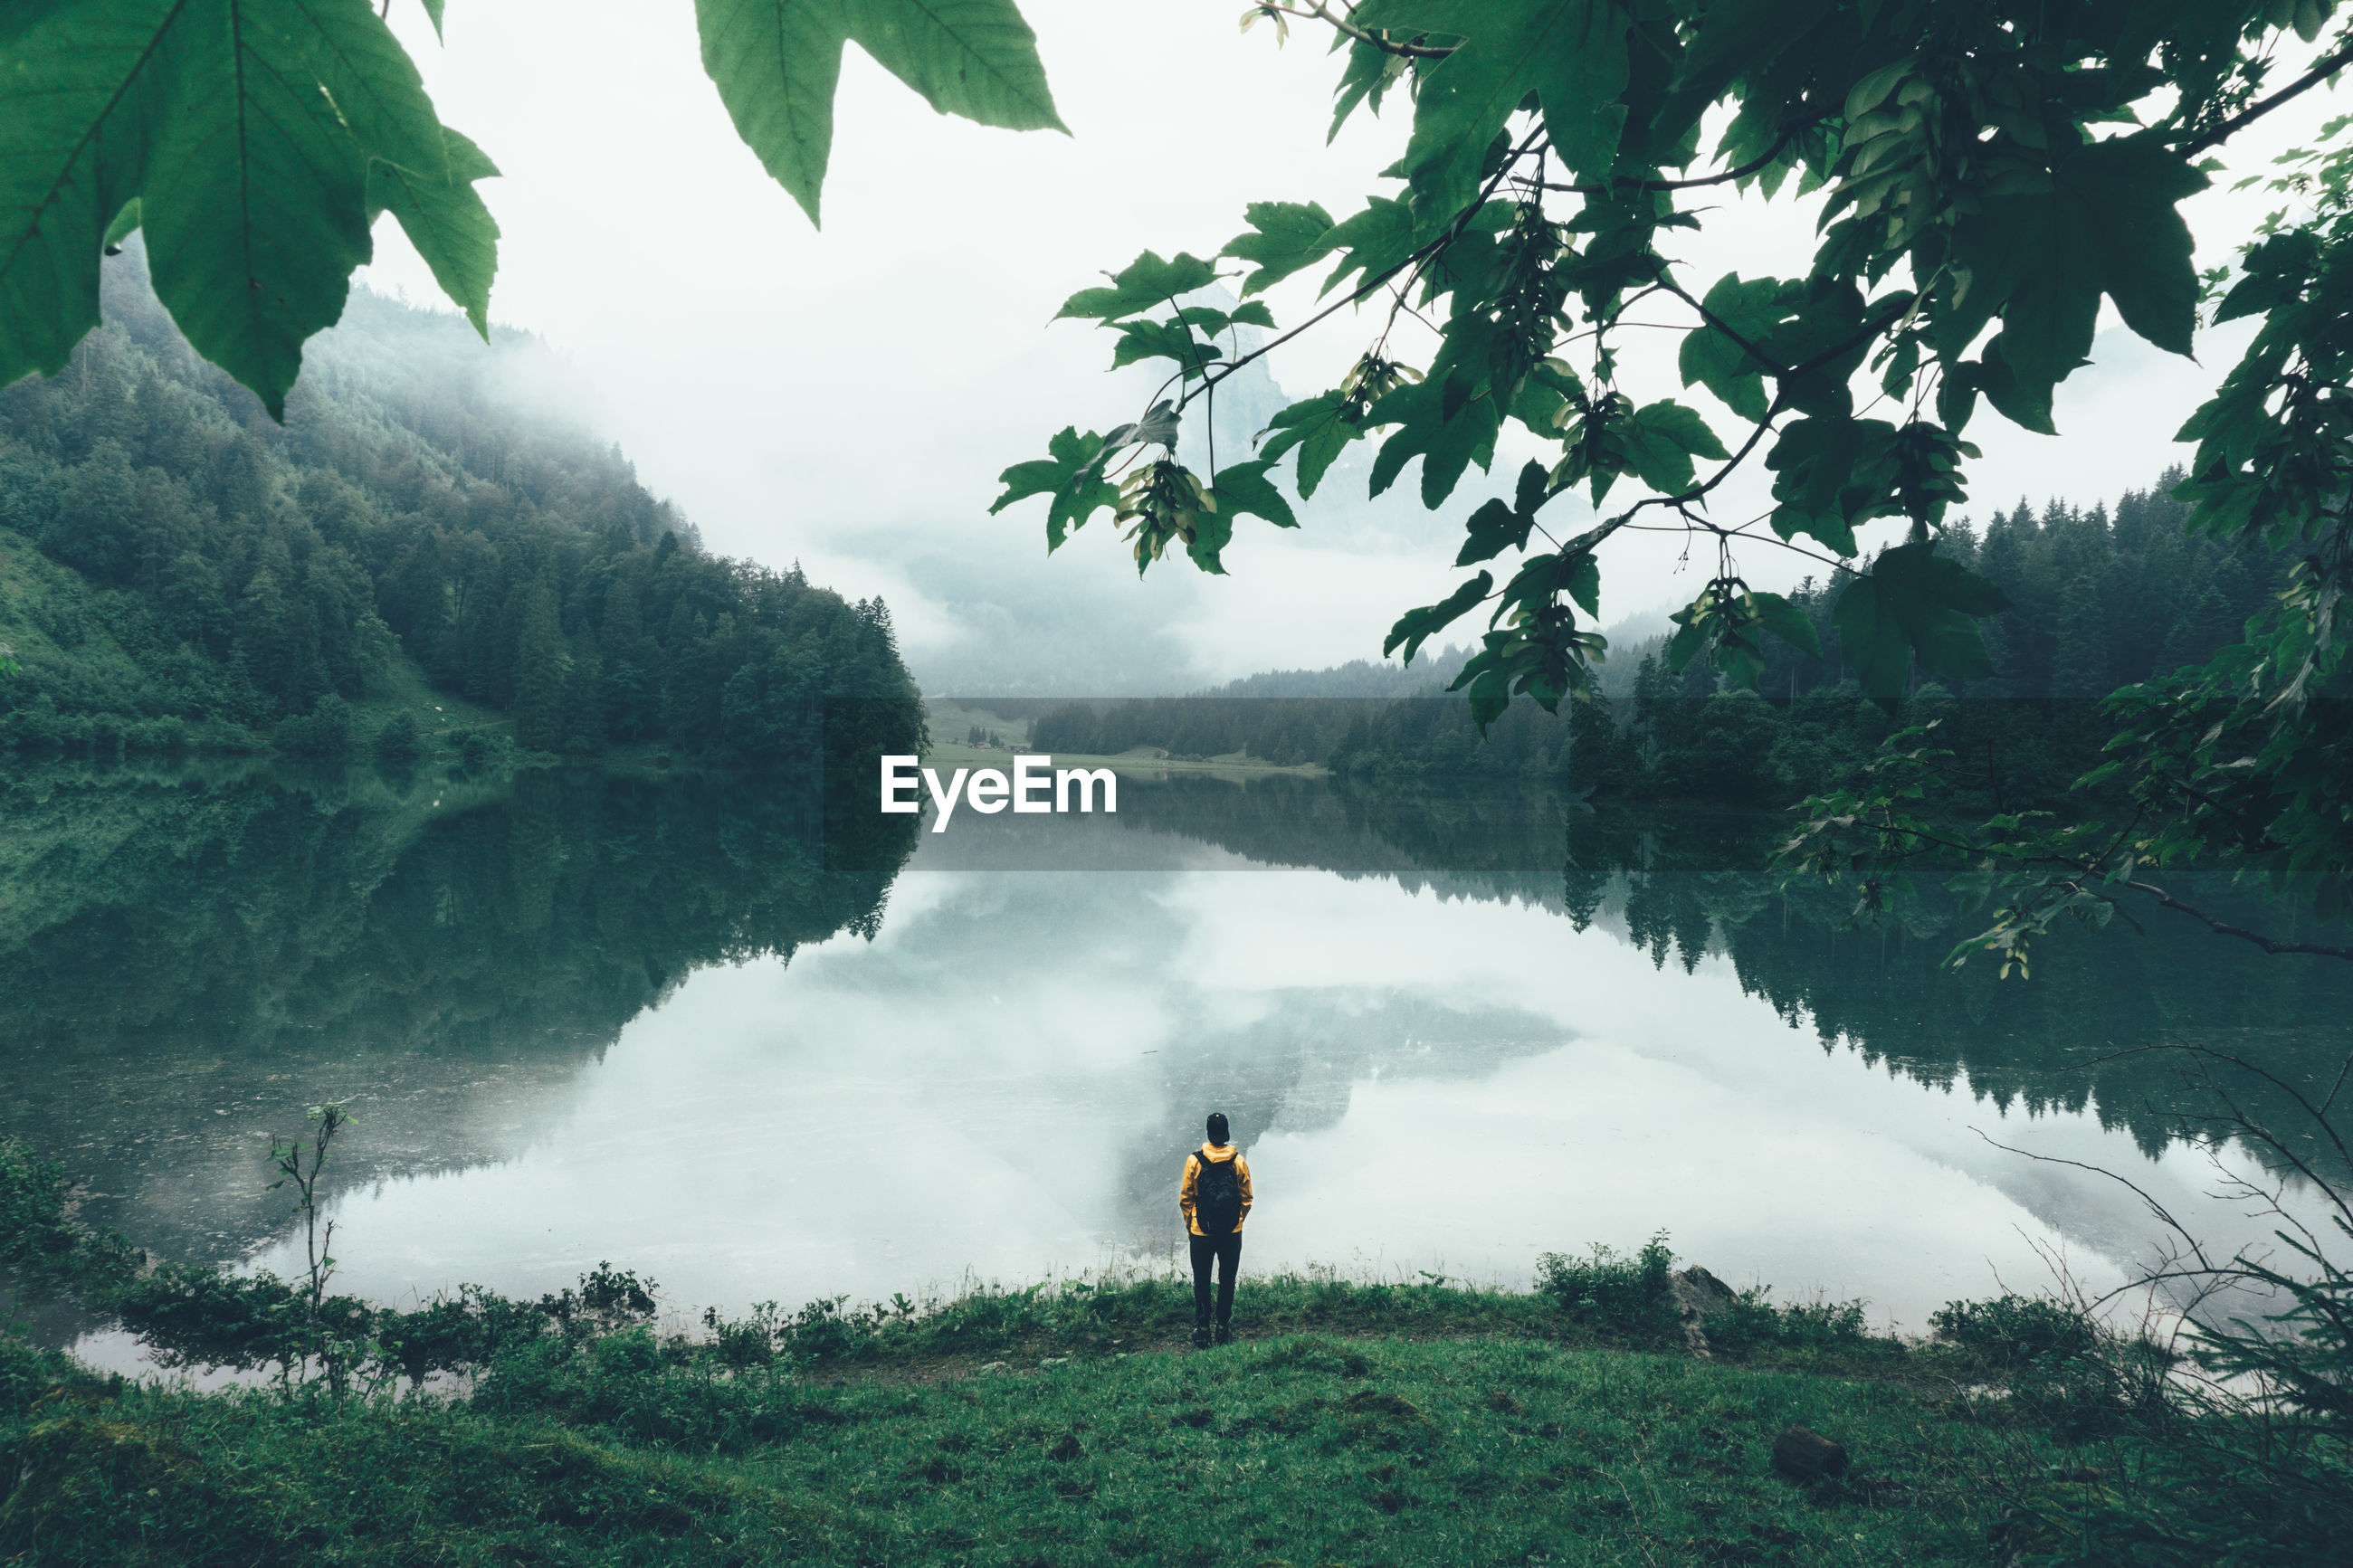 High angle view of man with backpack standing by lake during foggy weather